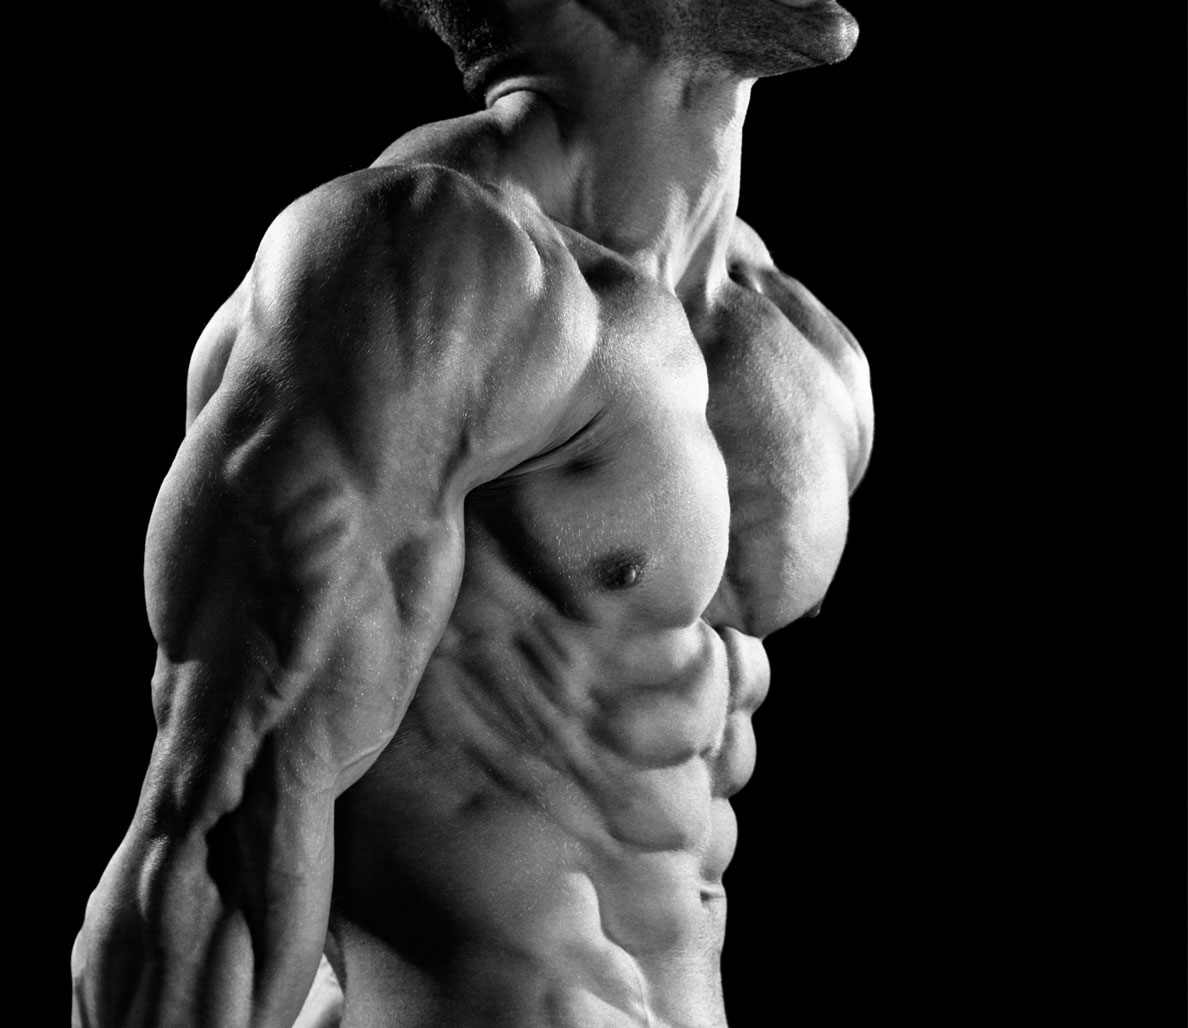 Cutting Season: The 21-Day Shred Spring 2015 Update